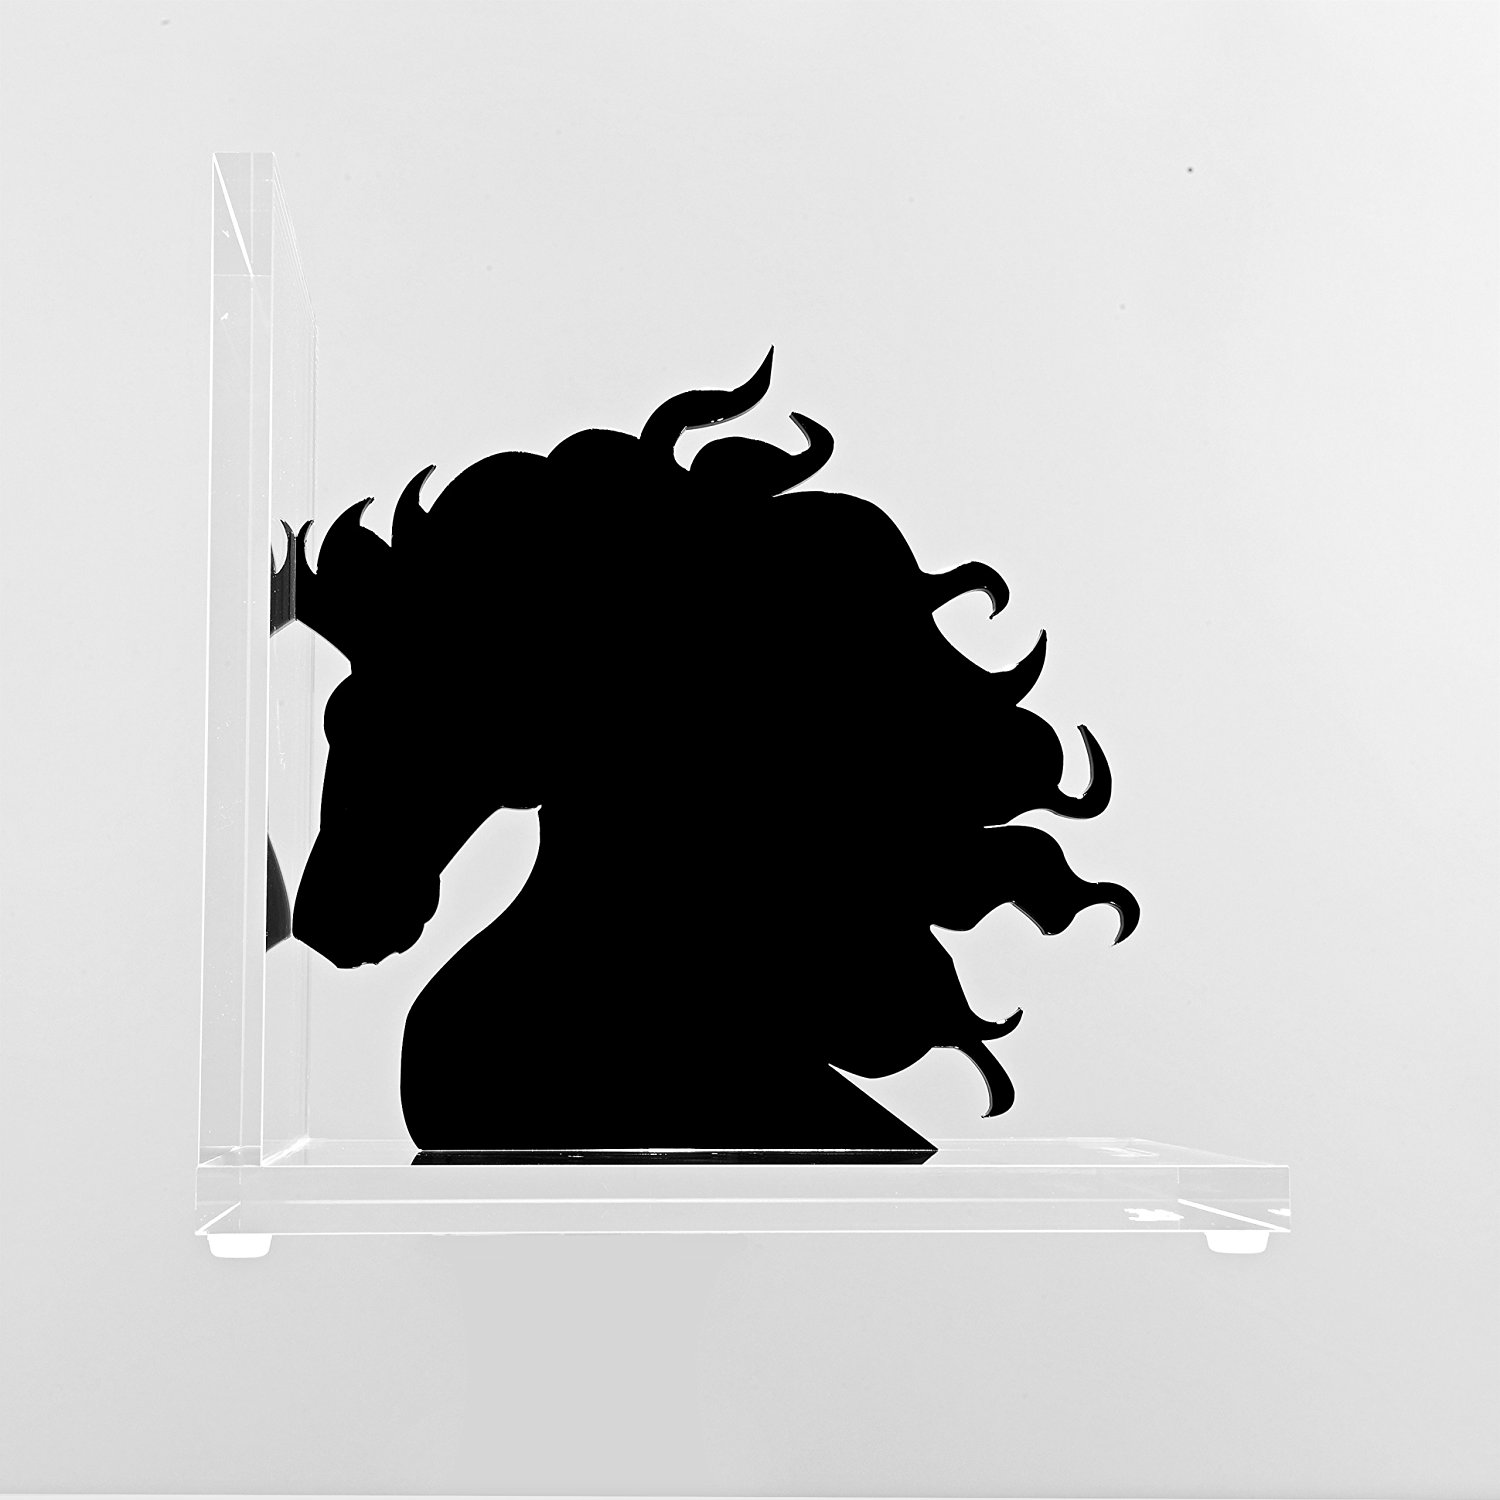 Acrylic Bookend - Horse Head. High Quality Modern Bookend Clear Acrylic (Perspex) Base and Laser Cut Horse Head Available in Black or White. (Black)